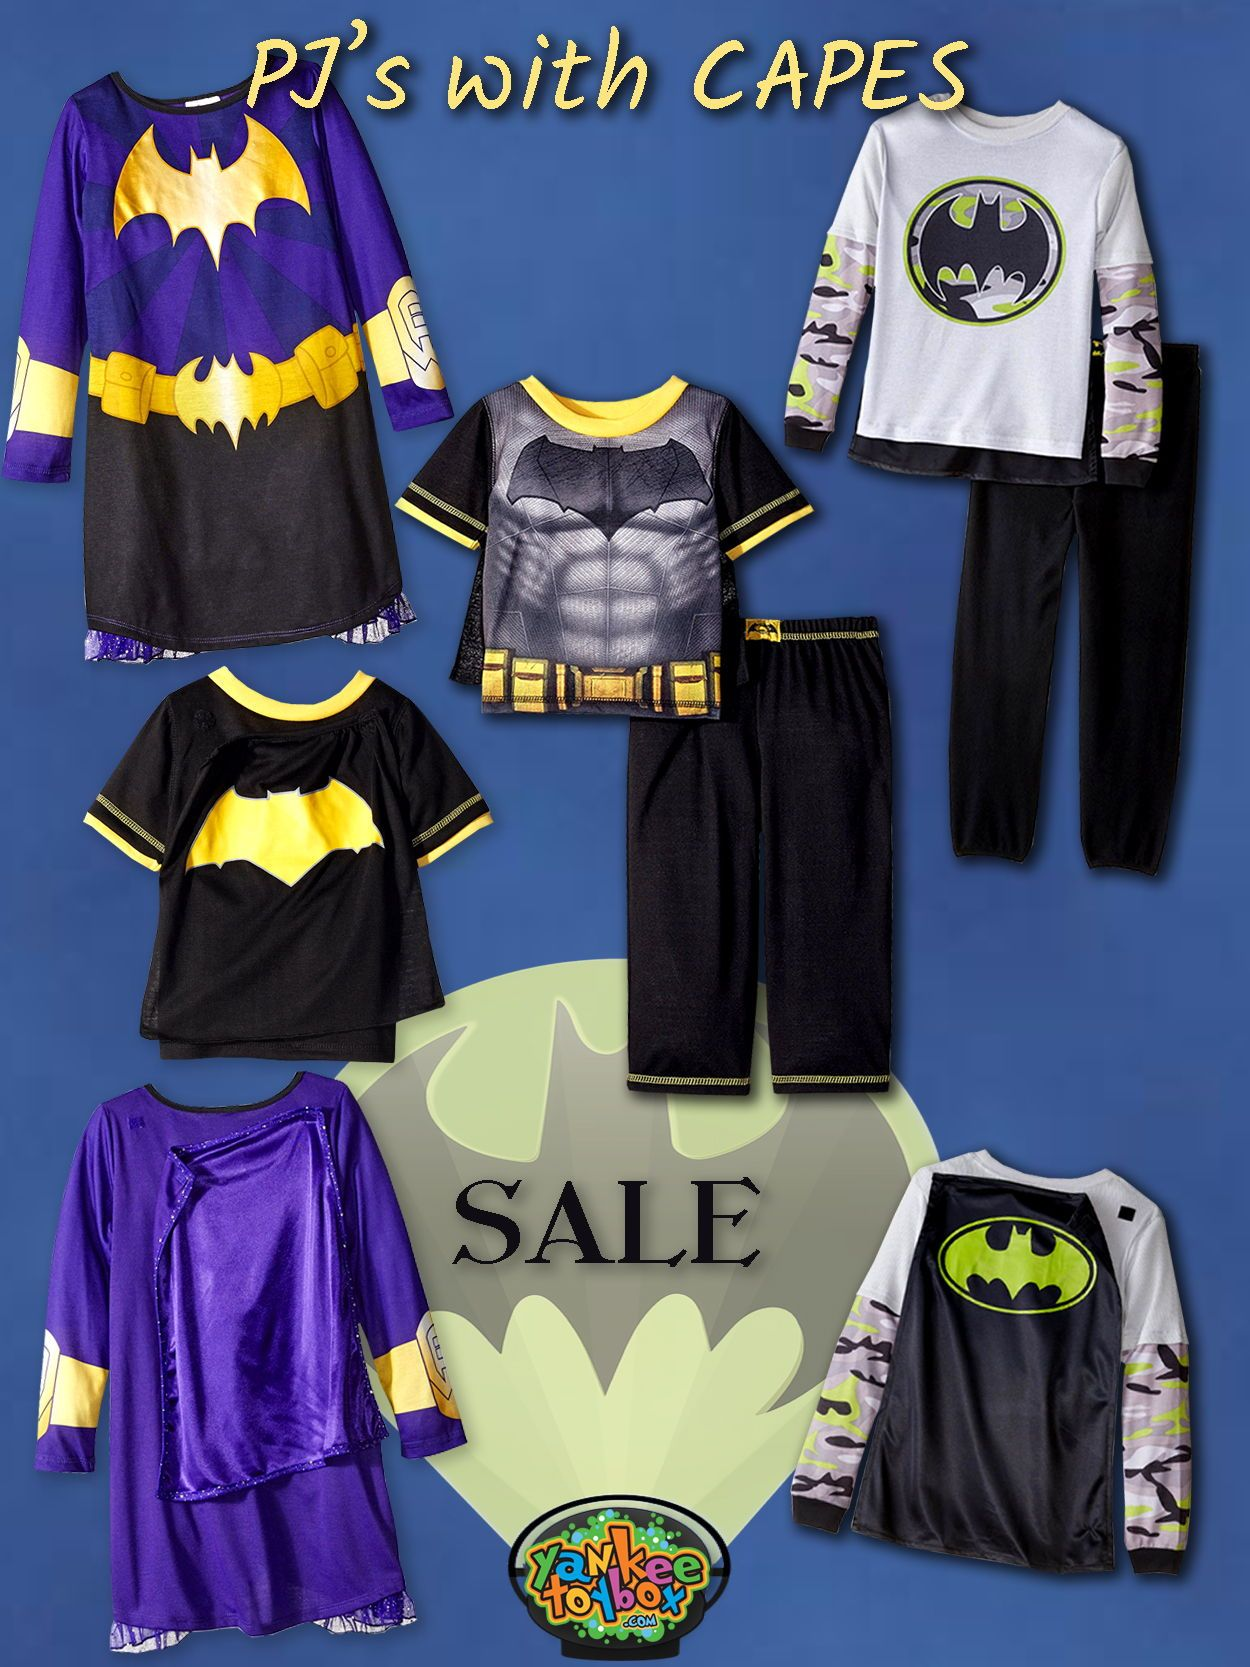 c8feadfeaf87 Super-cool detachable capes make these officially licensed DC Comics pajama  sets BAT-TASTIC